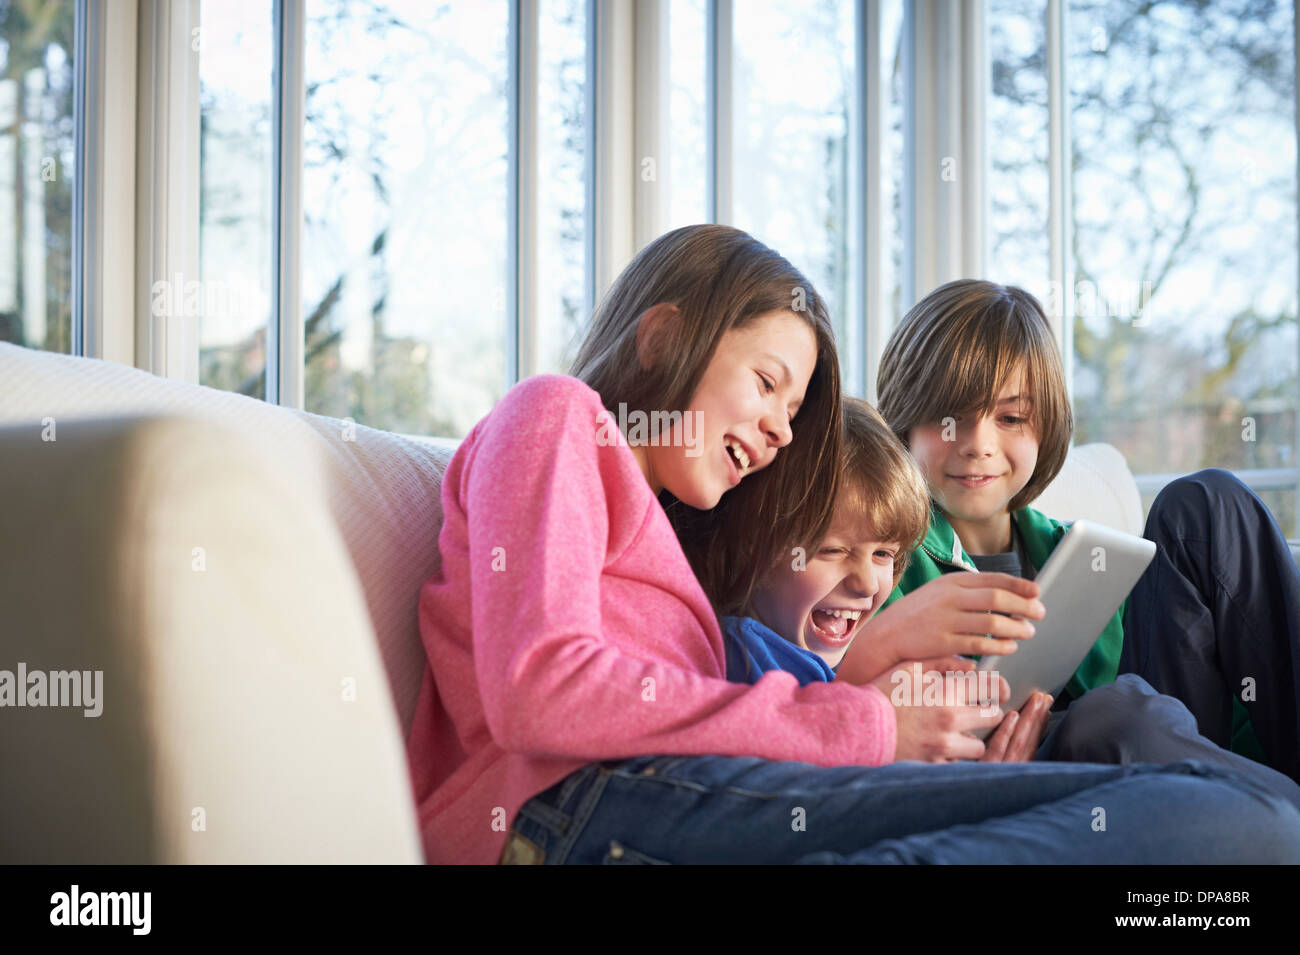 Siblings using digital tablet together Stock Photo